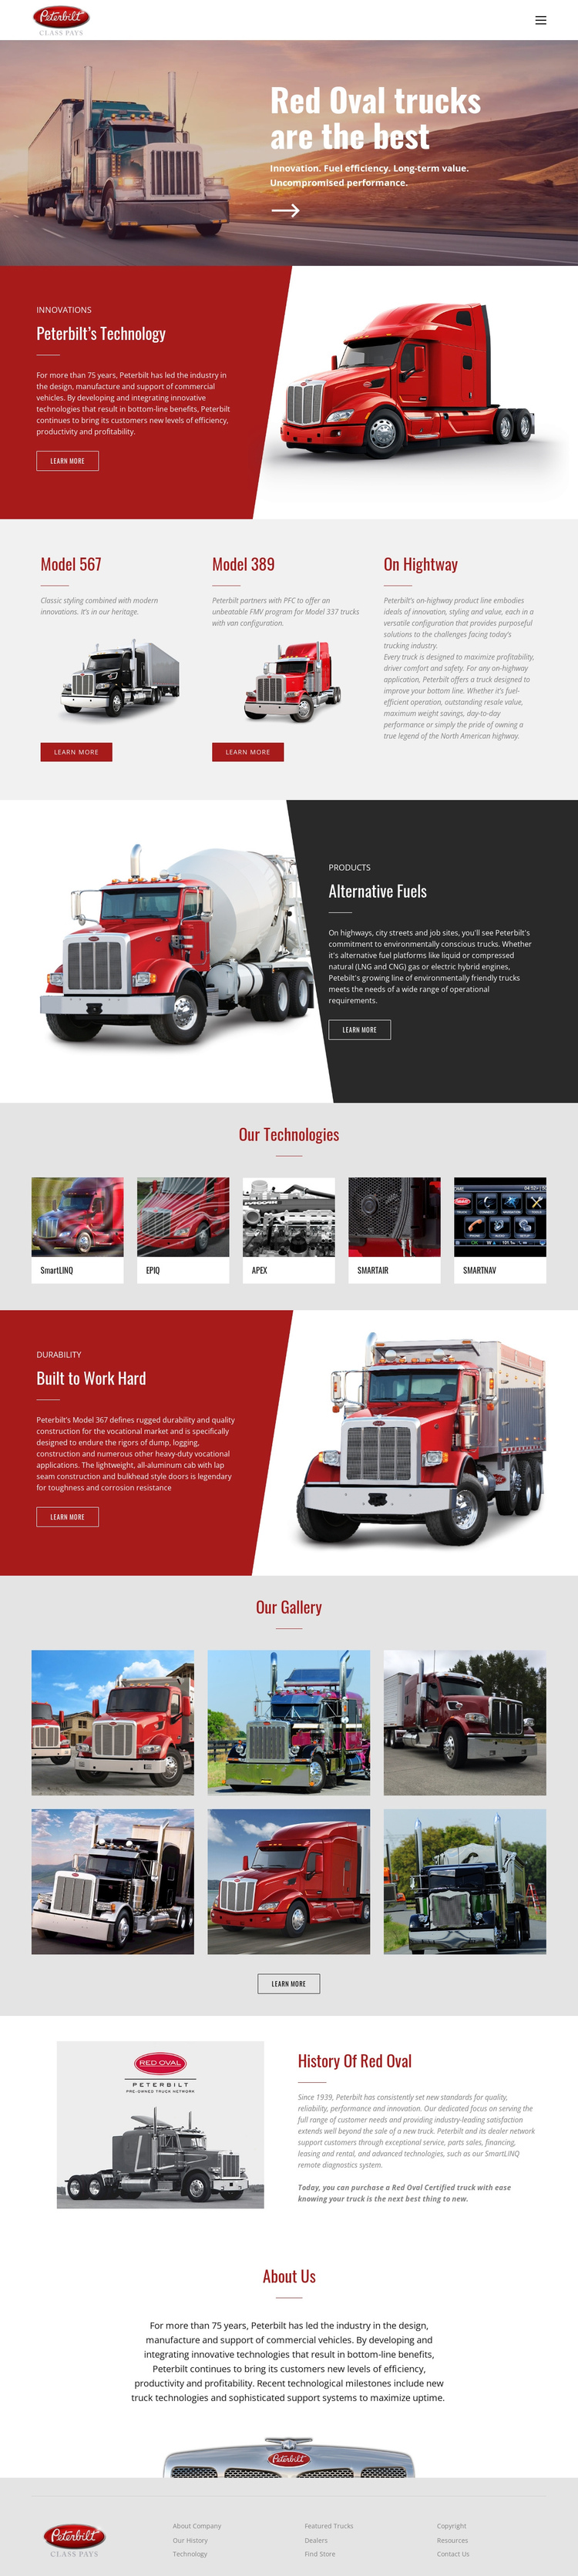 Red oval truck transportaion Website Builder Software